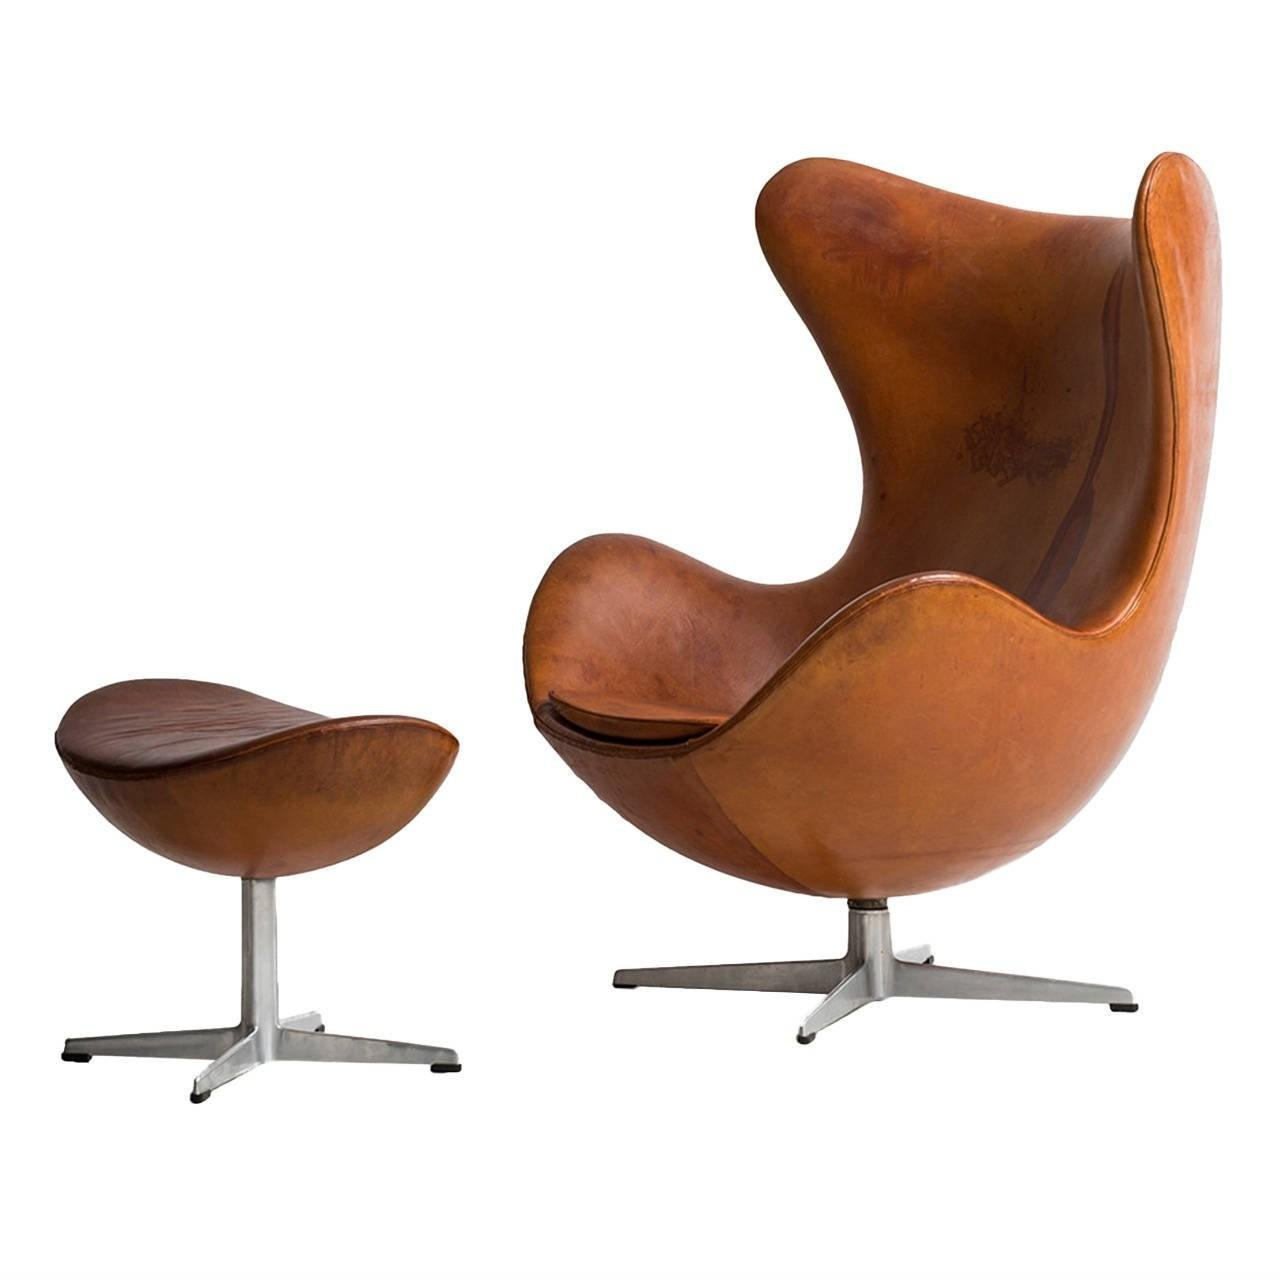 Egg Chair Cognac.Arne Jacobsen Egg Chair Original Cognac Brown Leather